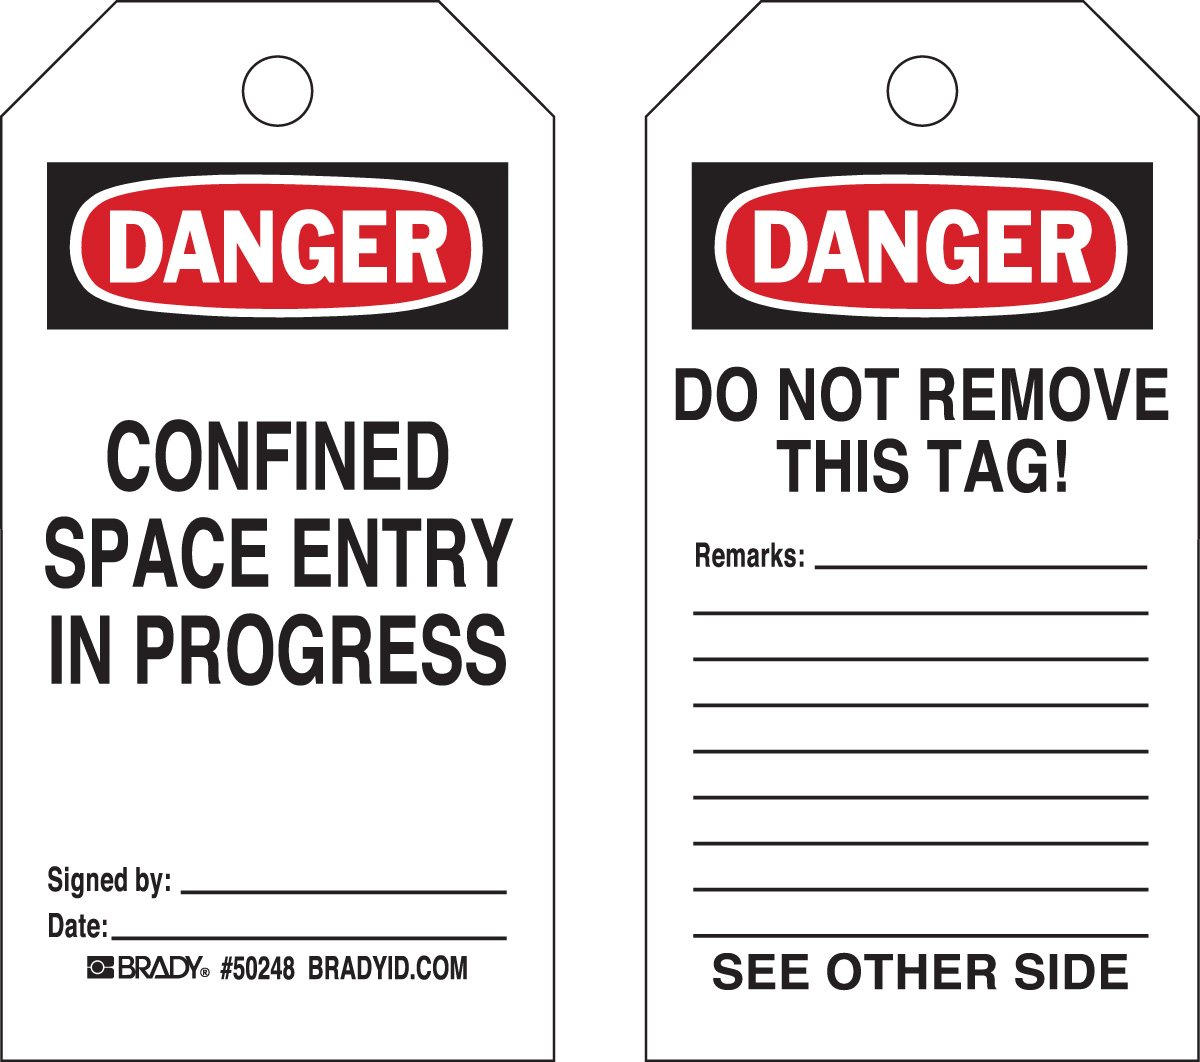 Brady  50248 5 3/4'' Height x 3'' Width, Heavy Duty Polyester (B-837), Black/Red on White Confined Space Tags (25 Tags) by Brady